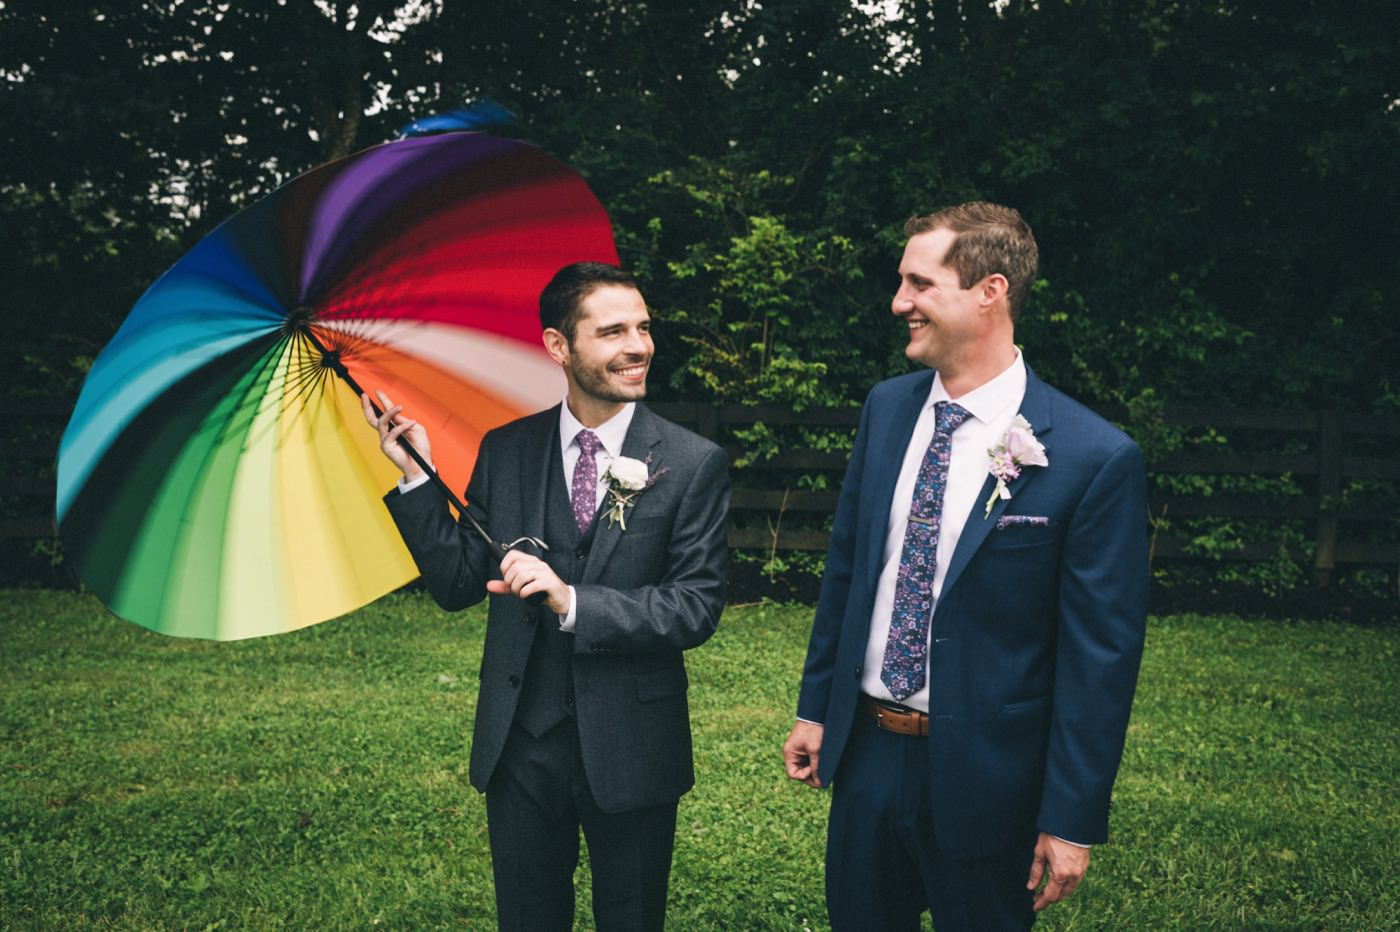 Will-Nate-Louisville-LGBTQ-Pride-Month-Kentucky-Wedding-By-Sarah-Katherine-Davis-Photograpy0013.JPG